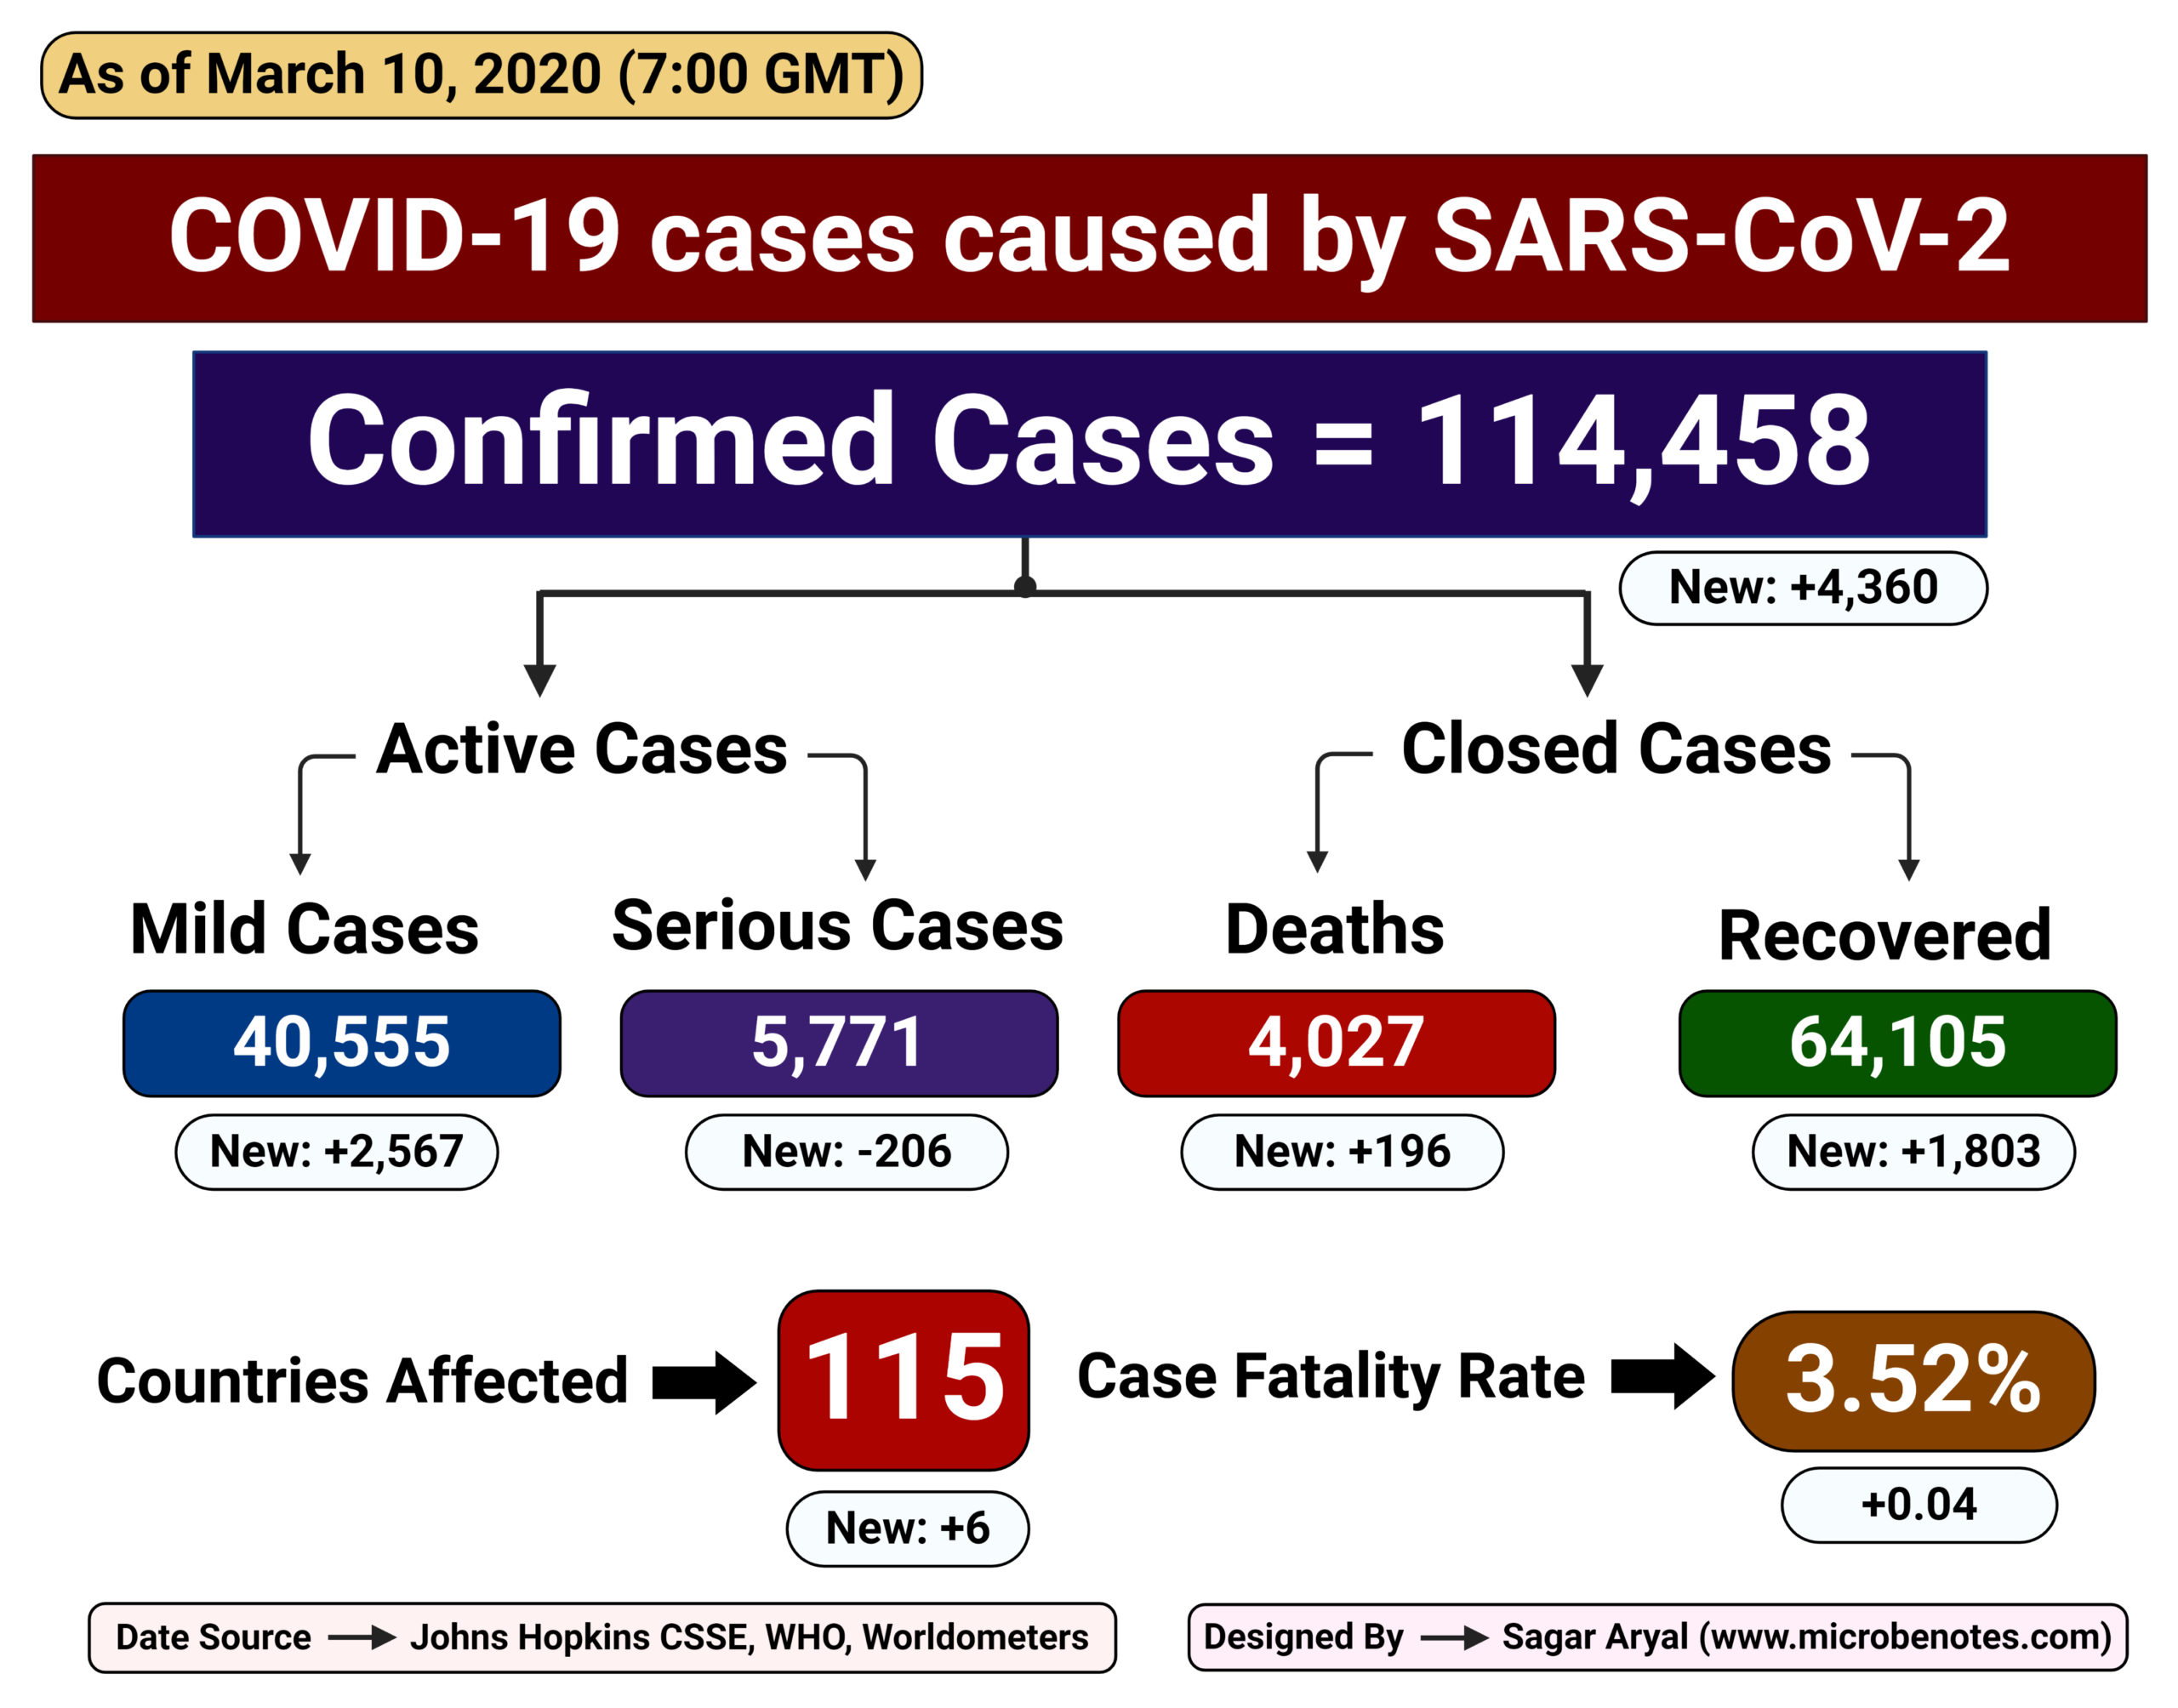 Epidemiology of COVID-19 caused by SARS-CoV-2 as of March 10, 2020